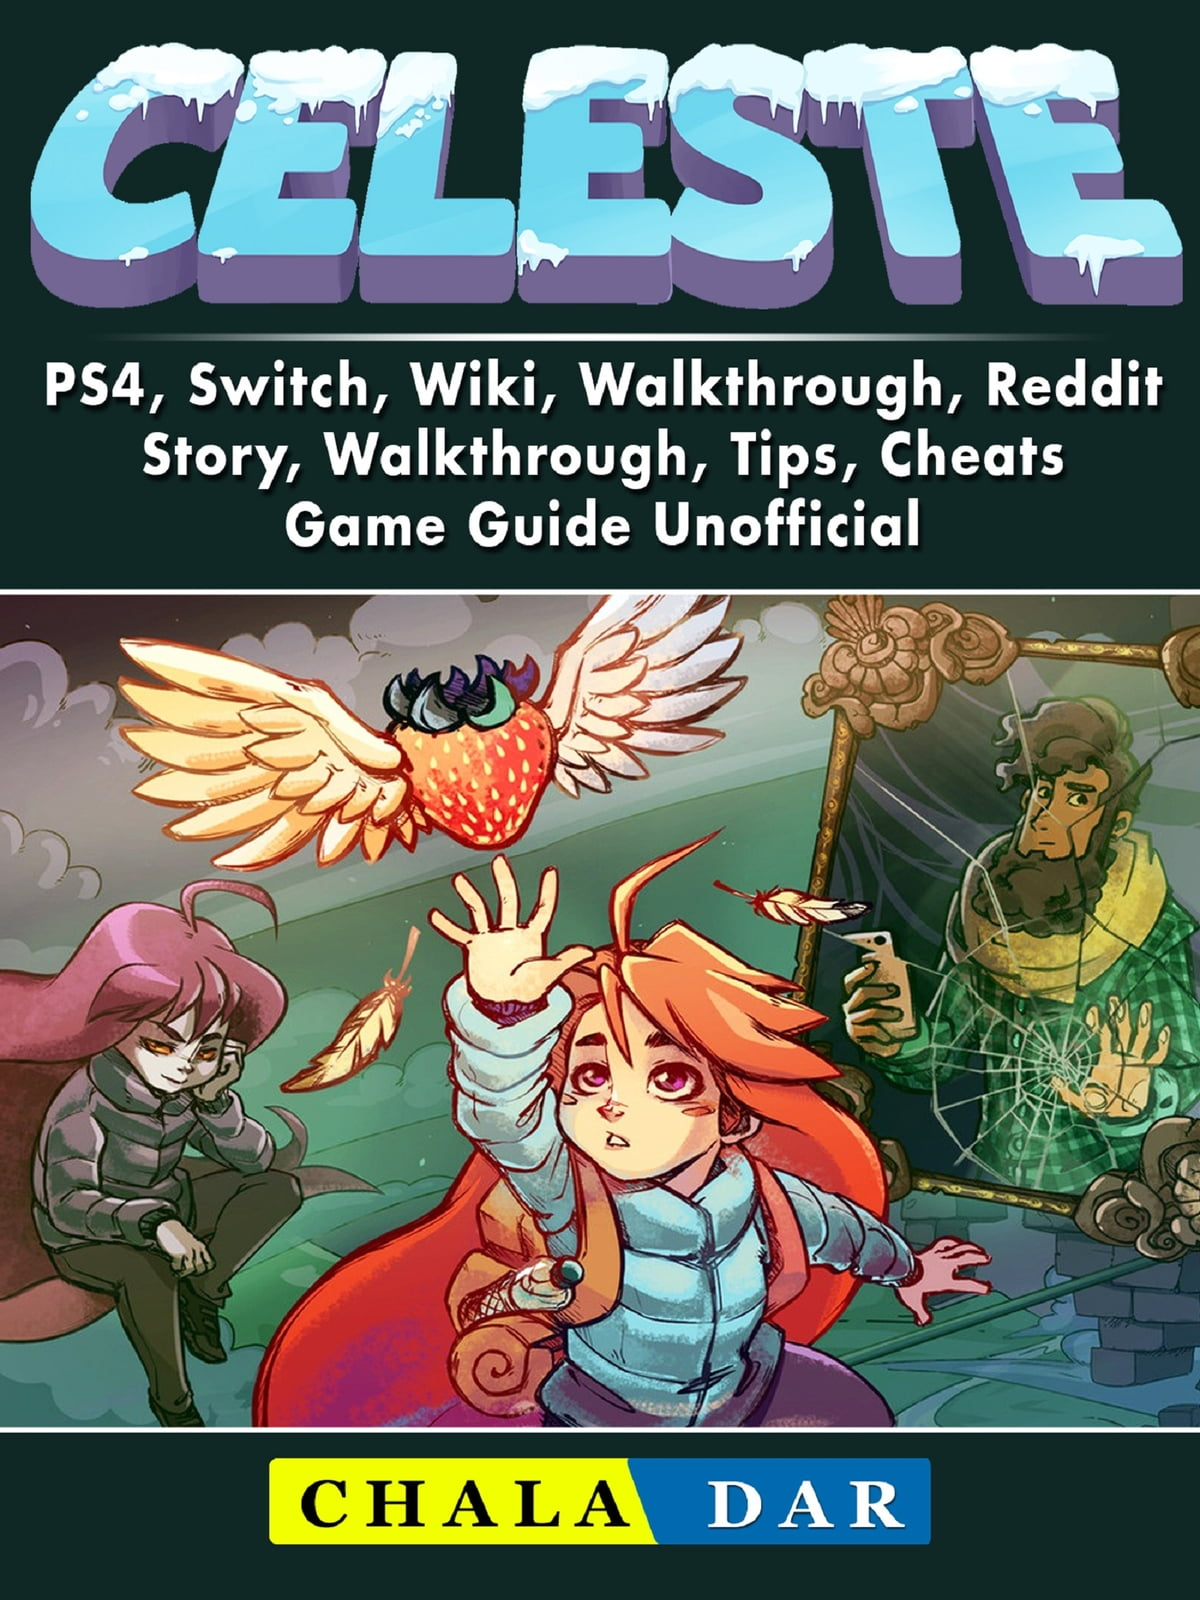 Celeste, PS4, Switch, Wiki, Walkthrough, Reddit, Story, Walkthrough, Tips,  Cheats, Game Guide Unofficial ebooks by Chala Dar - Rakuten Kobo